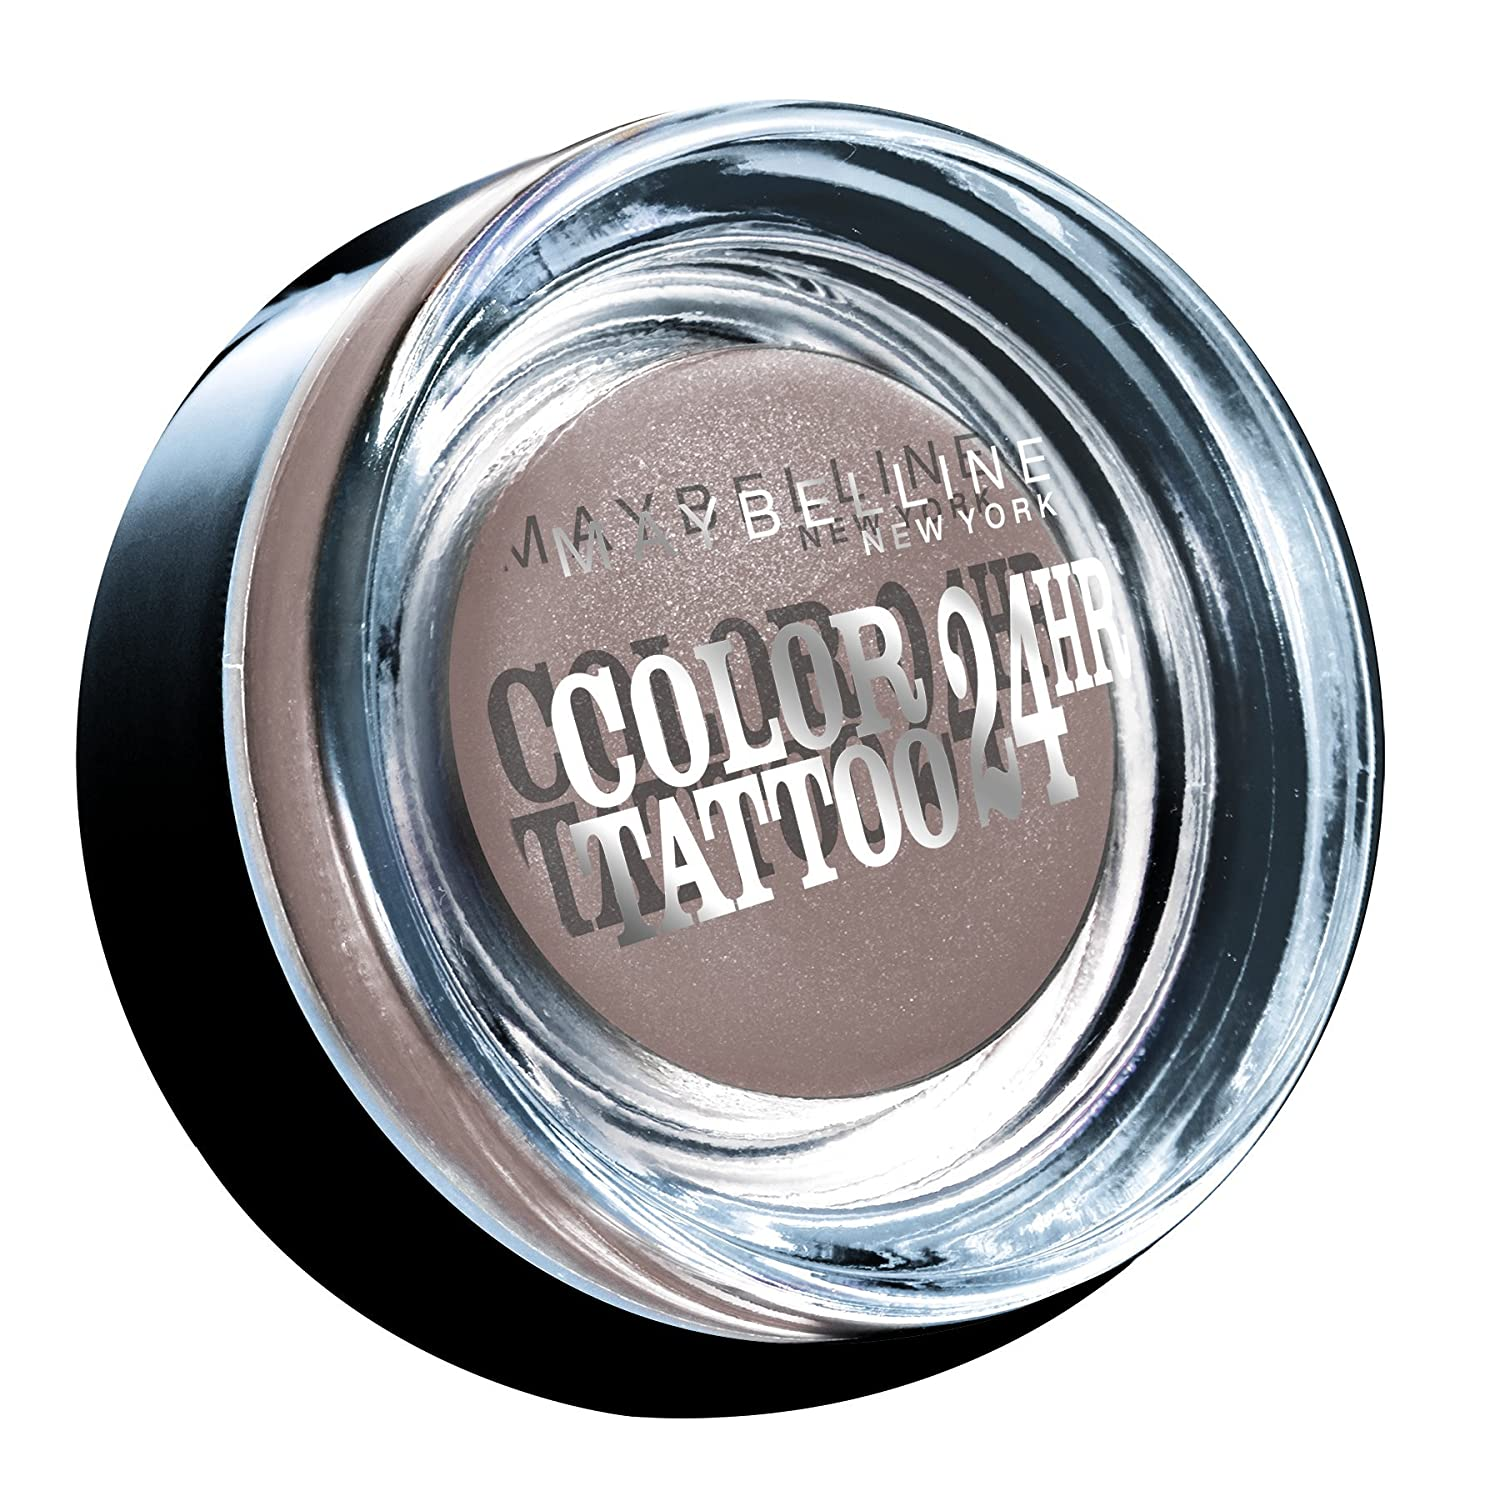 Maybelline Colour Tattoo 24 Hour Eye Shadow, Permanent Taupe Number 40